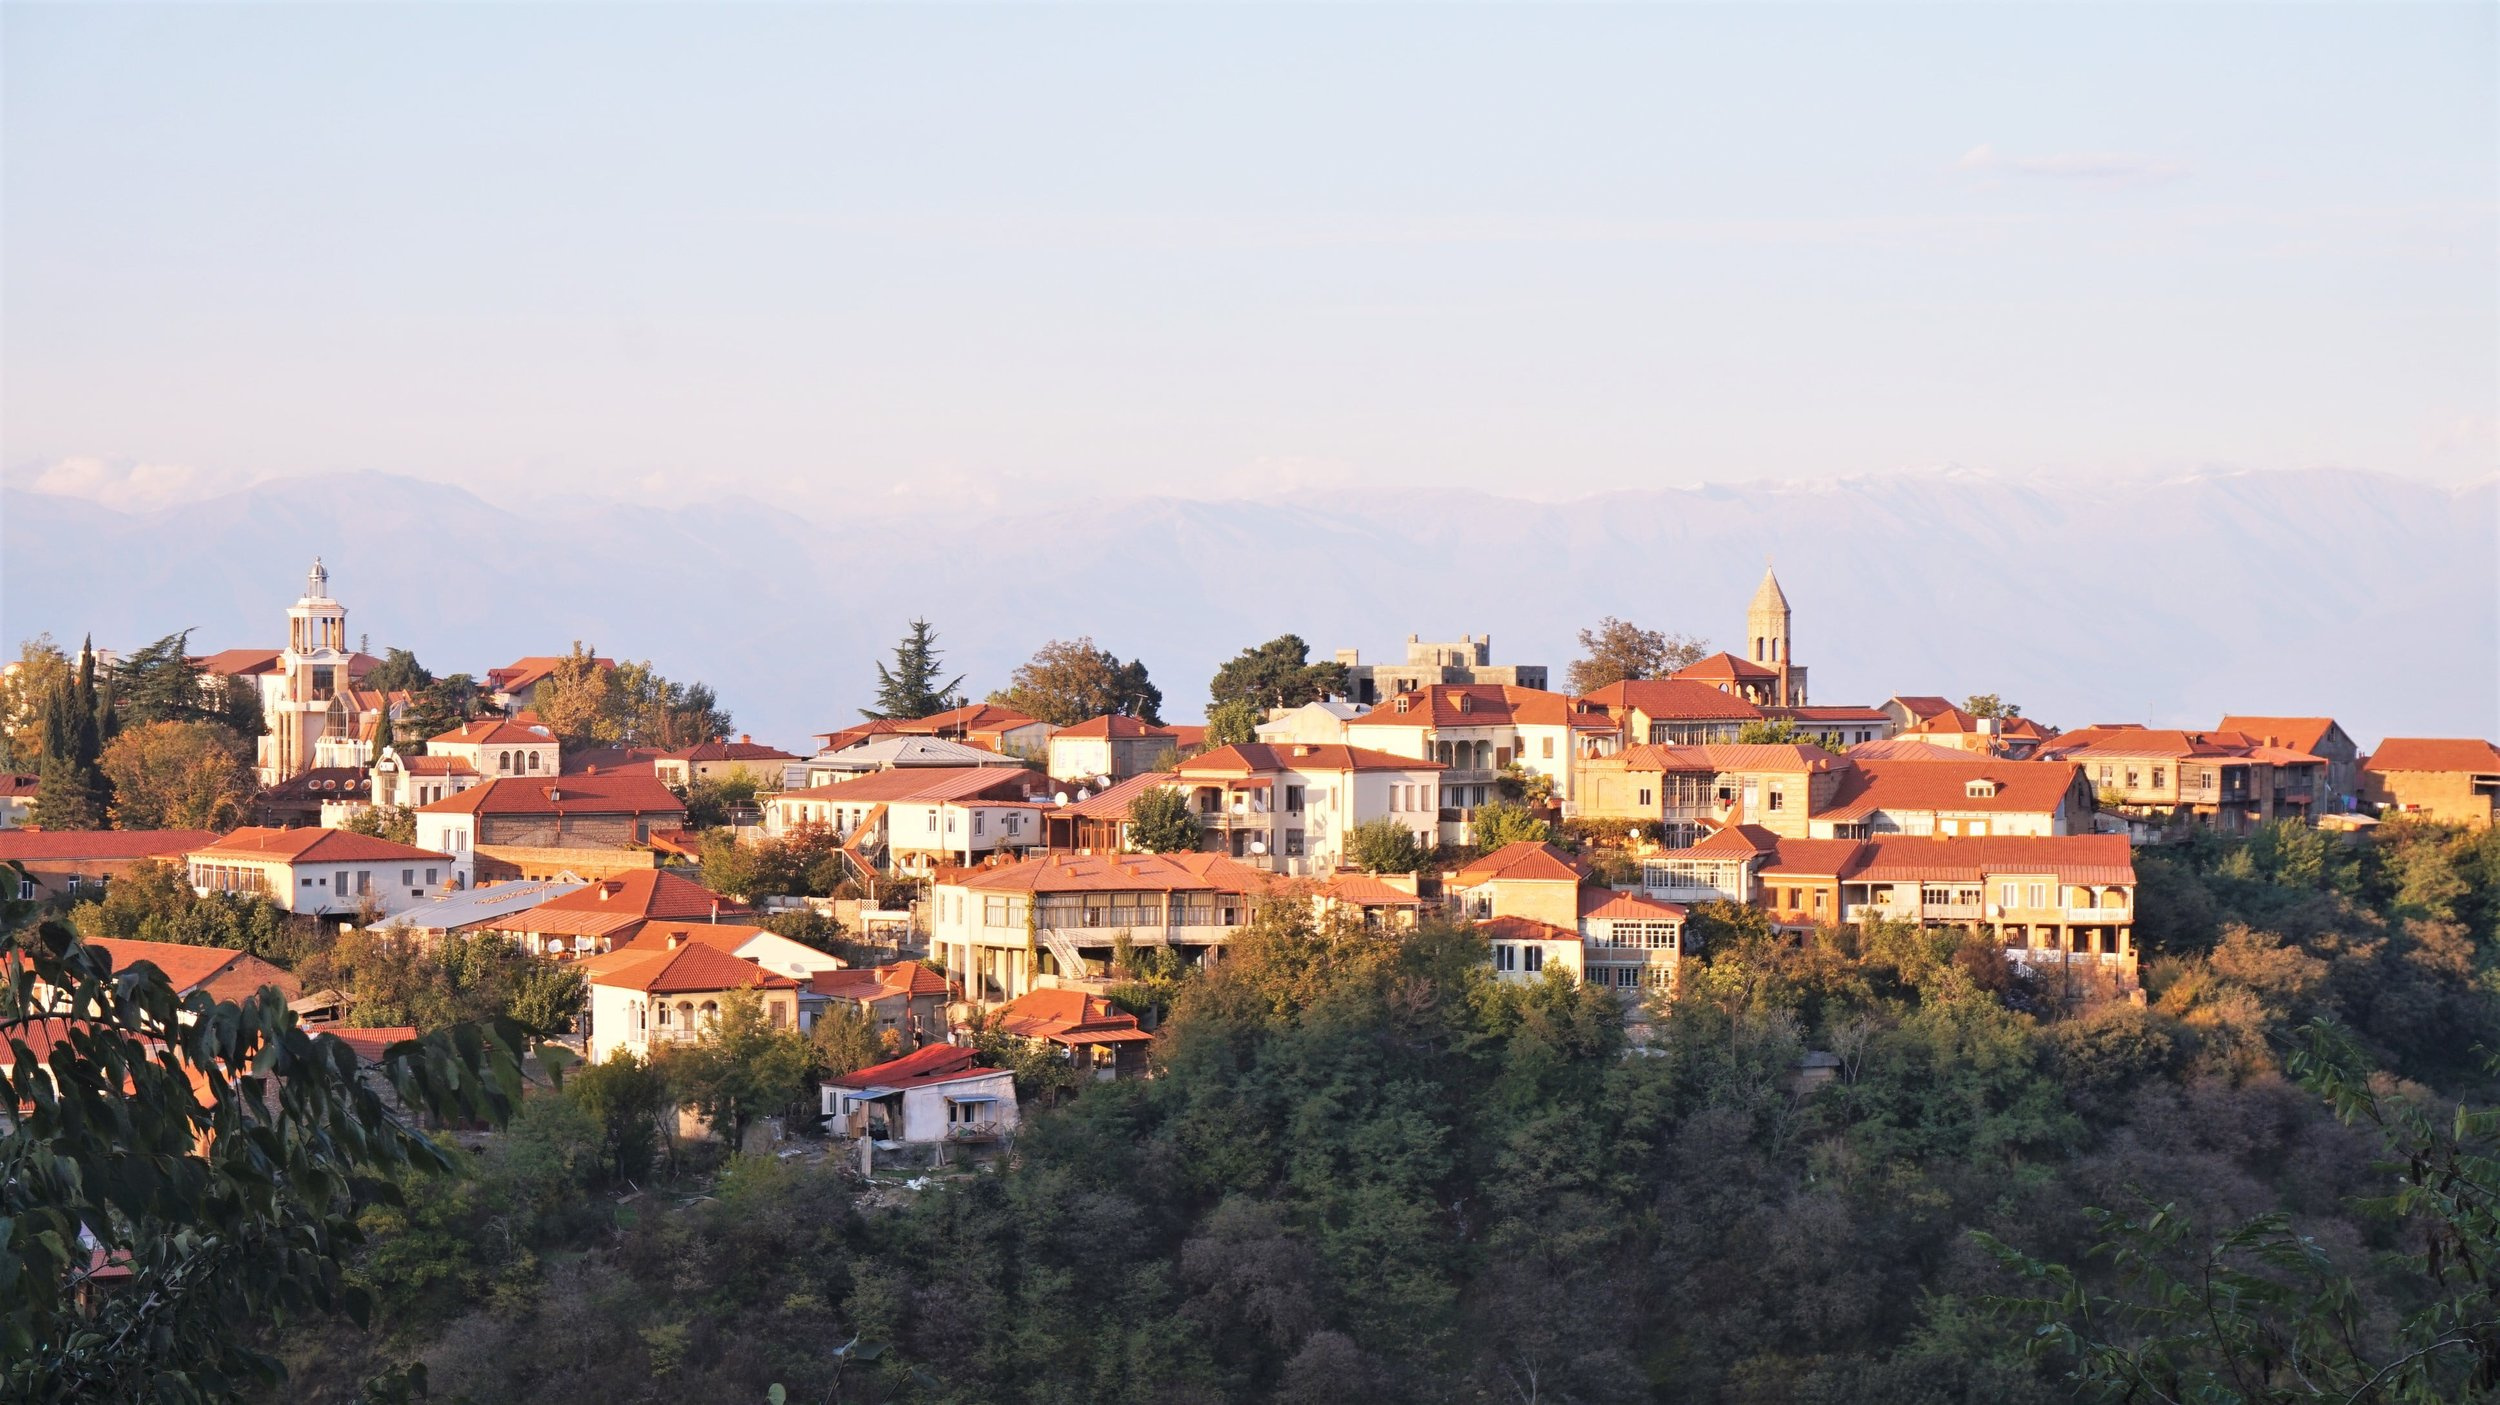 Signagi, also called the city of love is definitely one of the highlights of Kakheti! Most likely the best thing to do in Kakheti! You can't miss this town in your itinerary for Georgia's wine region.